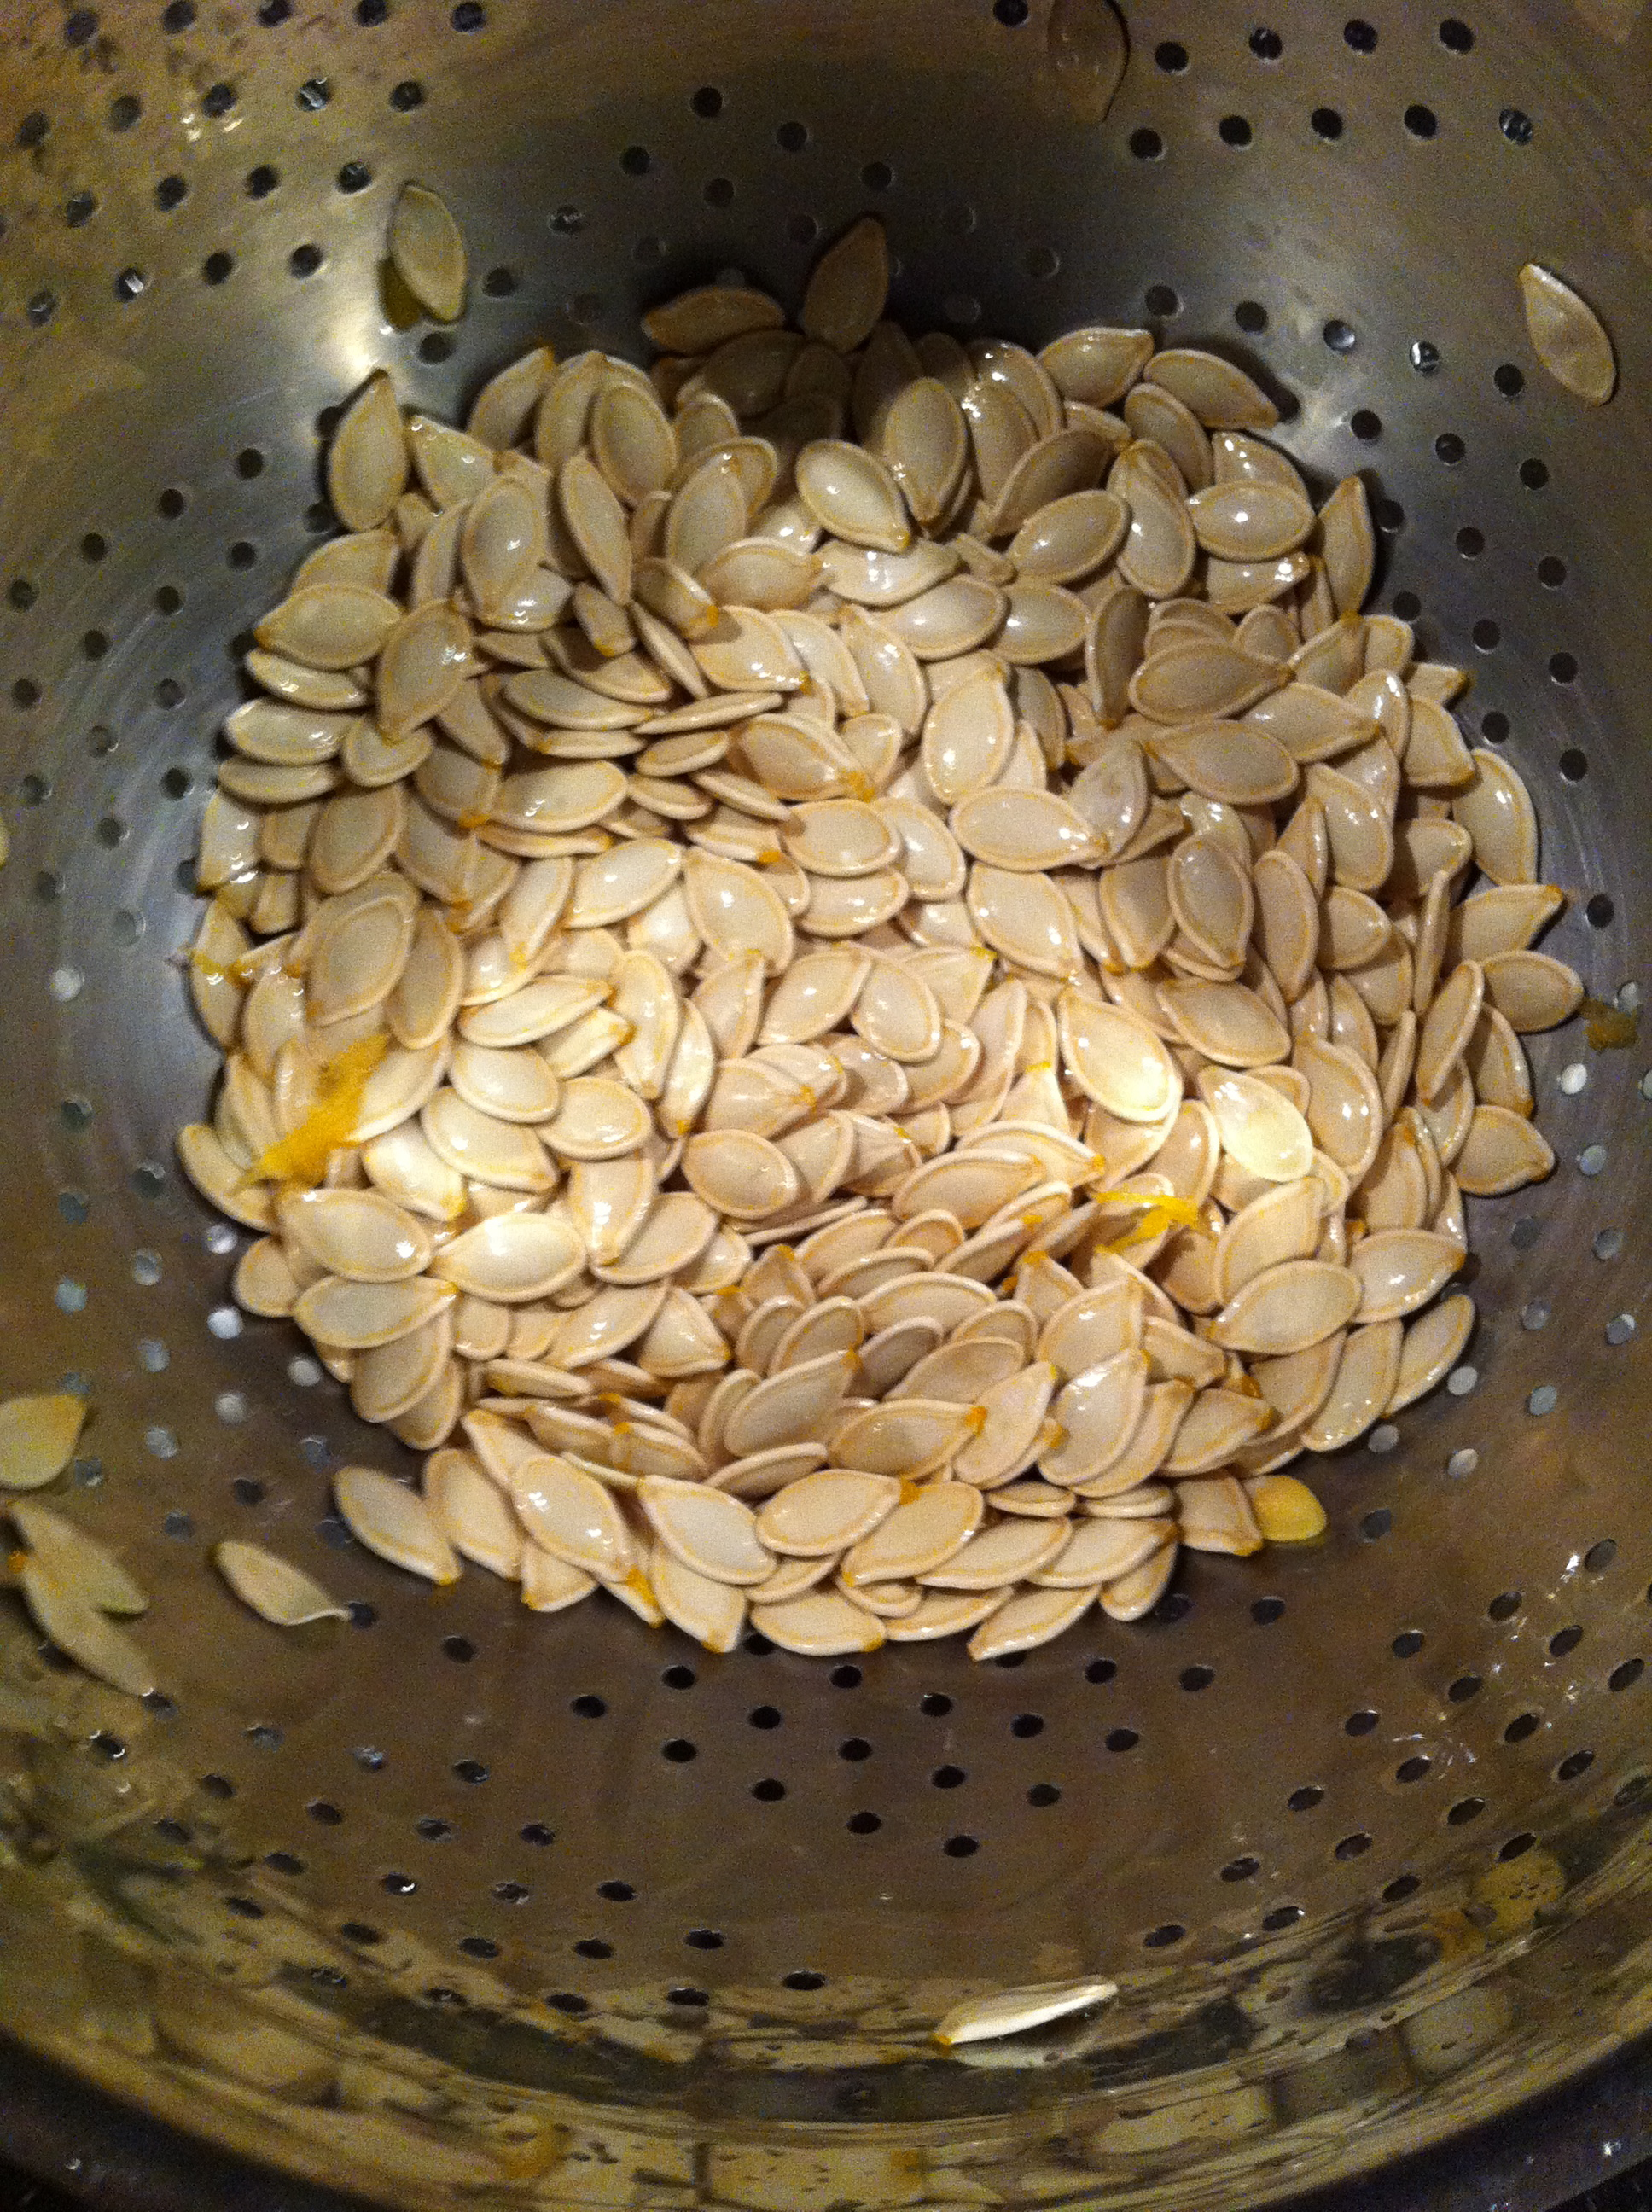 Rinsed pumpkin seeds ready to be prepared.